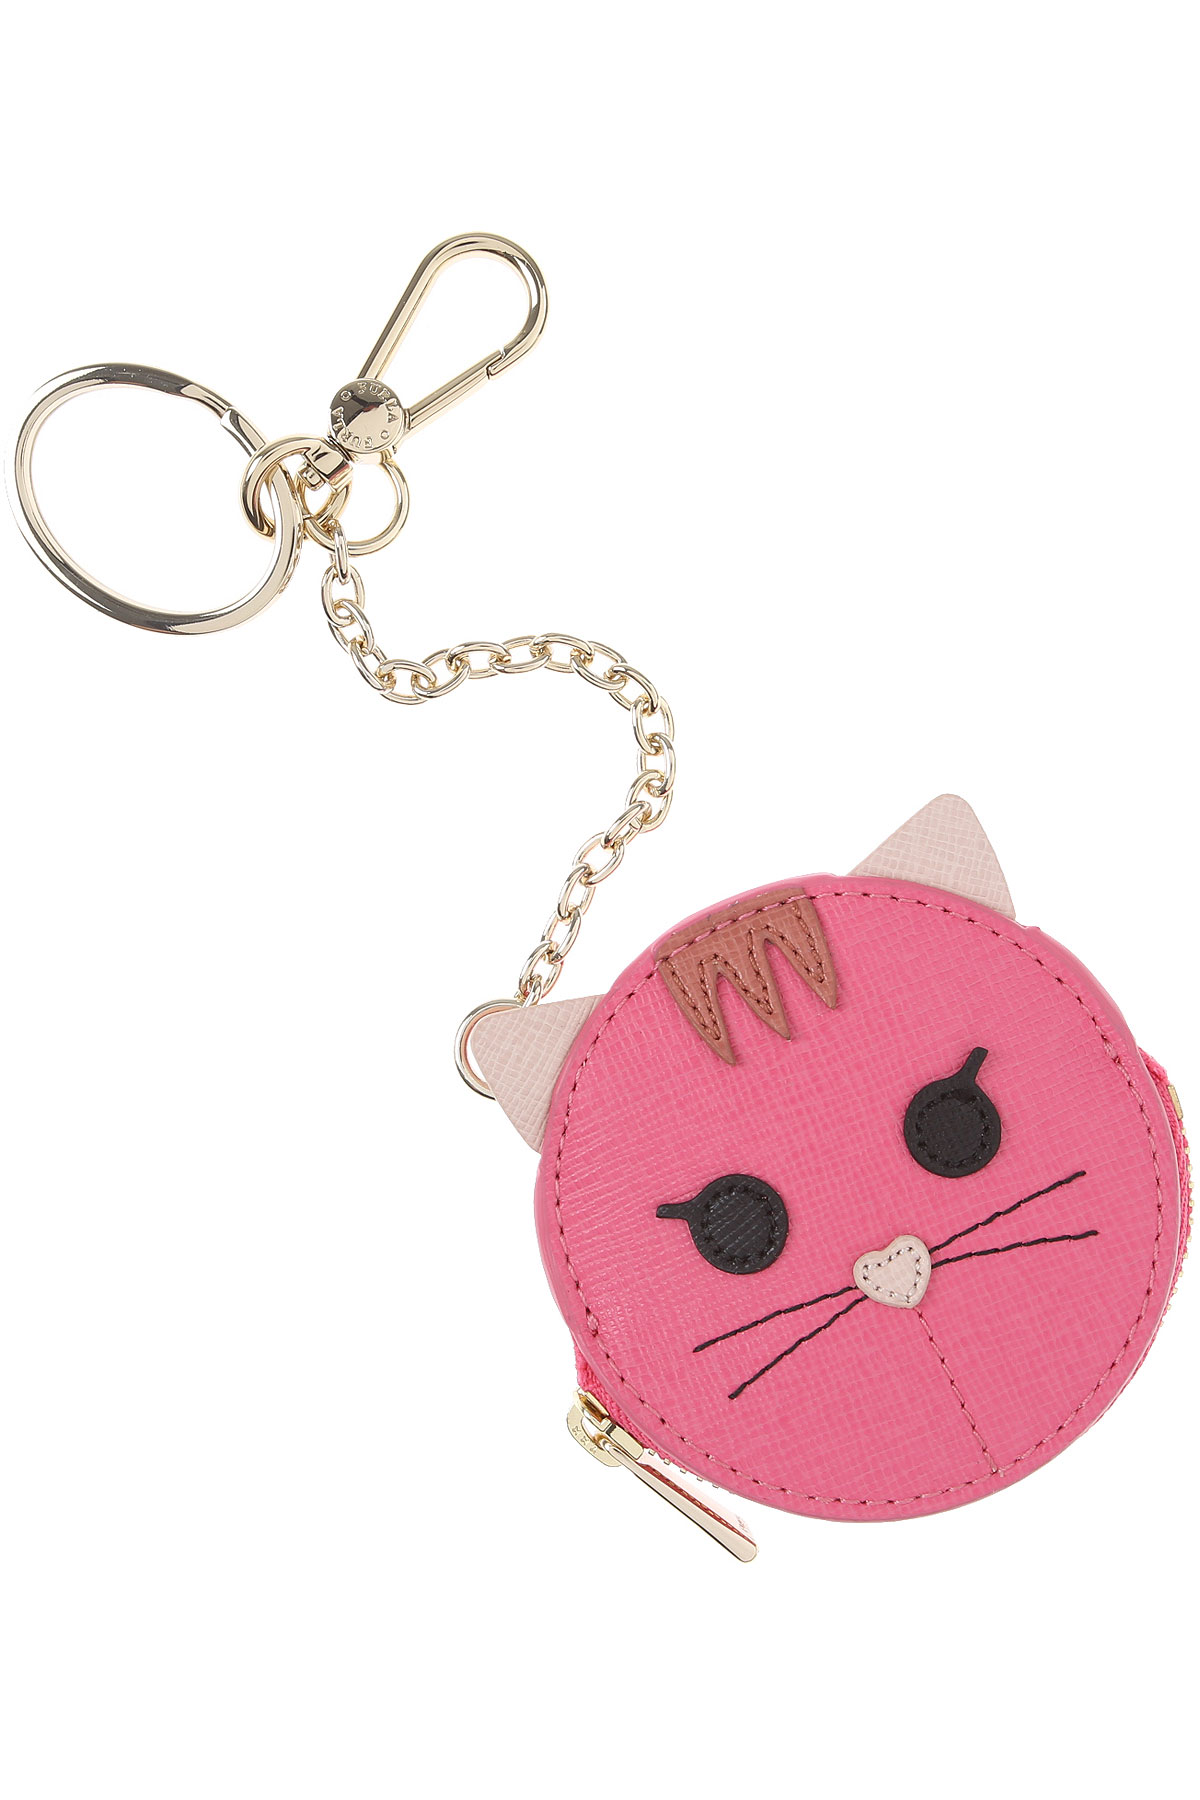 Furla Key Chain for Women, Key Ring On Sale in Outlet, Pink, Leather, 2019